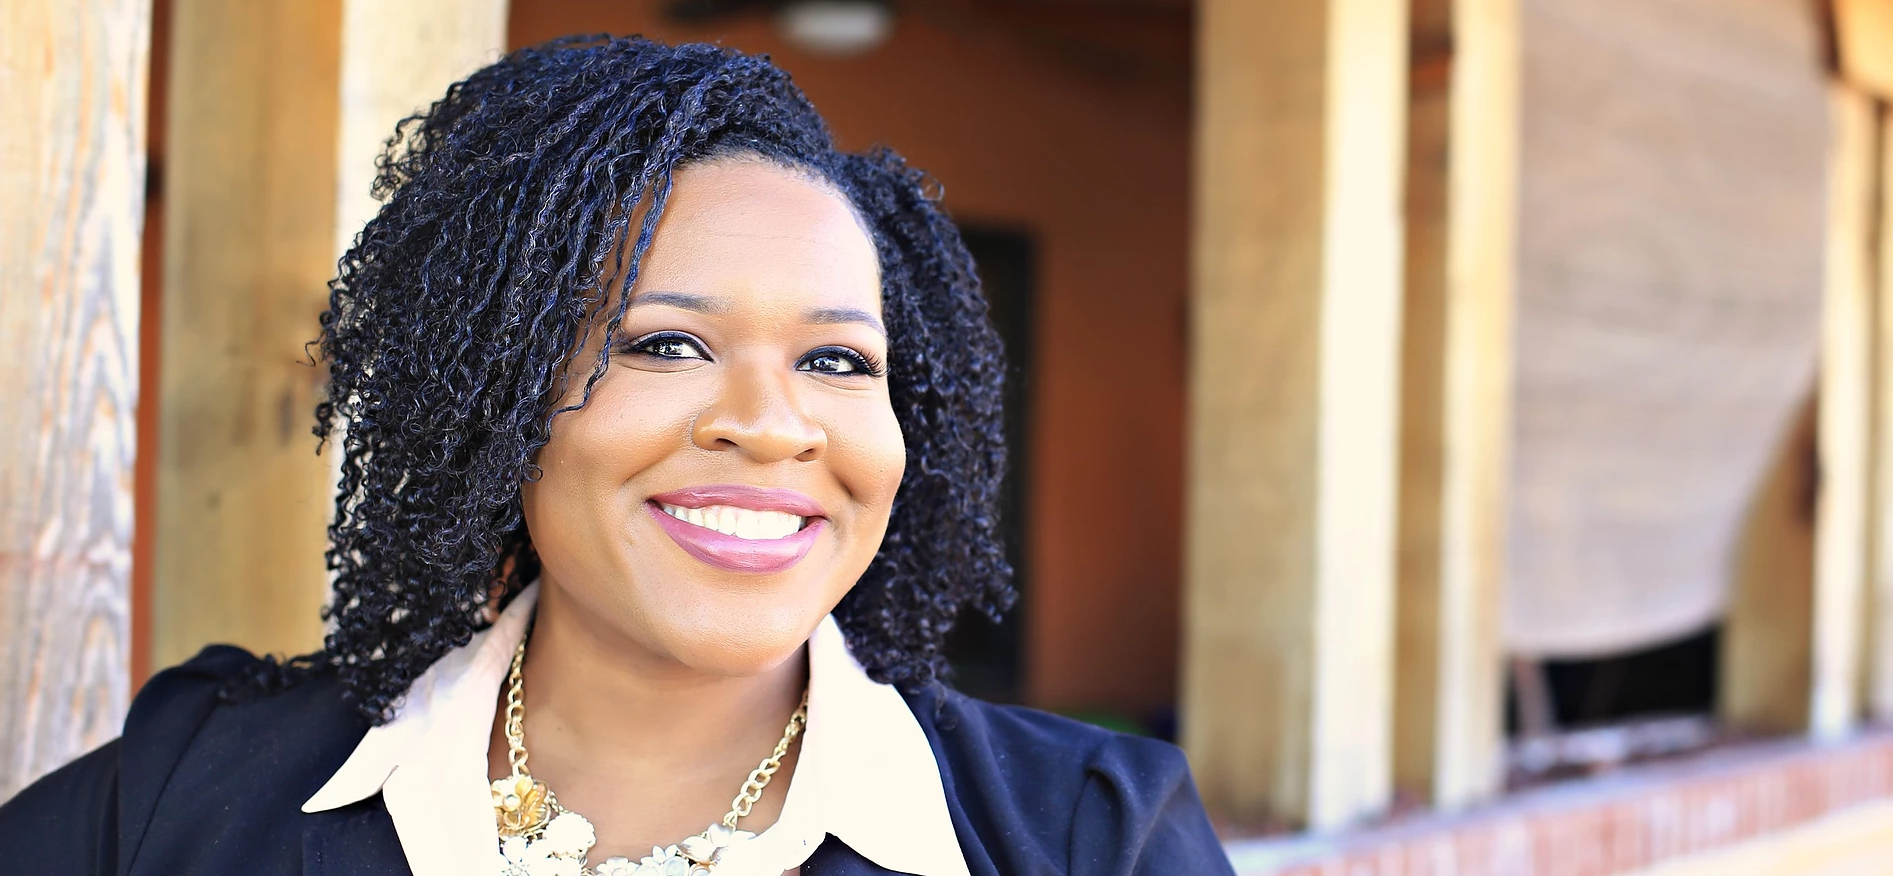 Meet the Psychotherapist That is Pushing Forward Mental Health in the Black Community